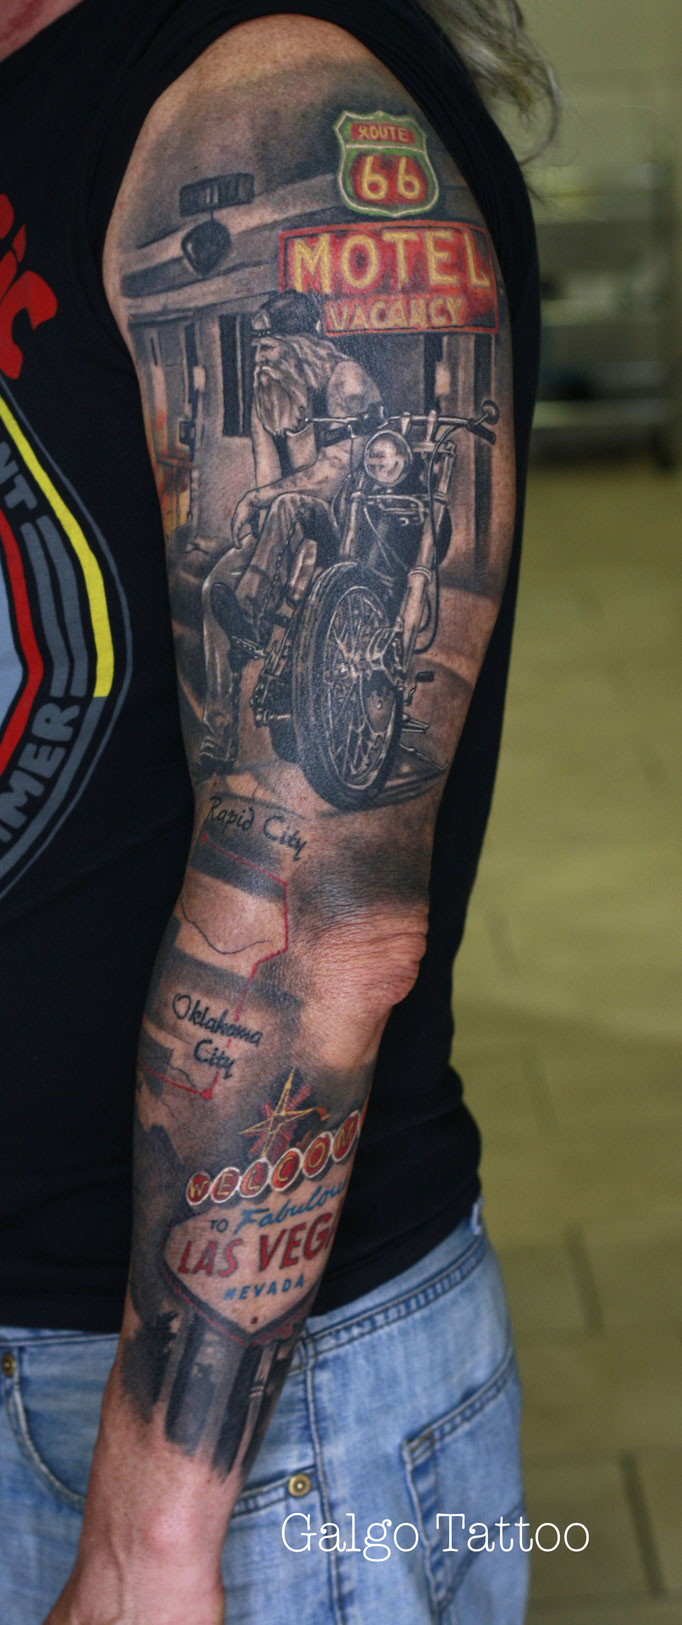 Tatuaje realismo de la ruta 66, manga completa en black and grey con algunos tonos de color. Full sleeve tattoo route 66